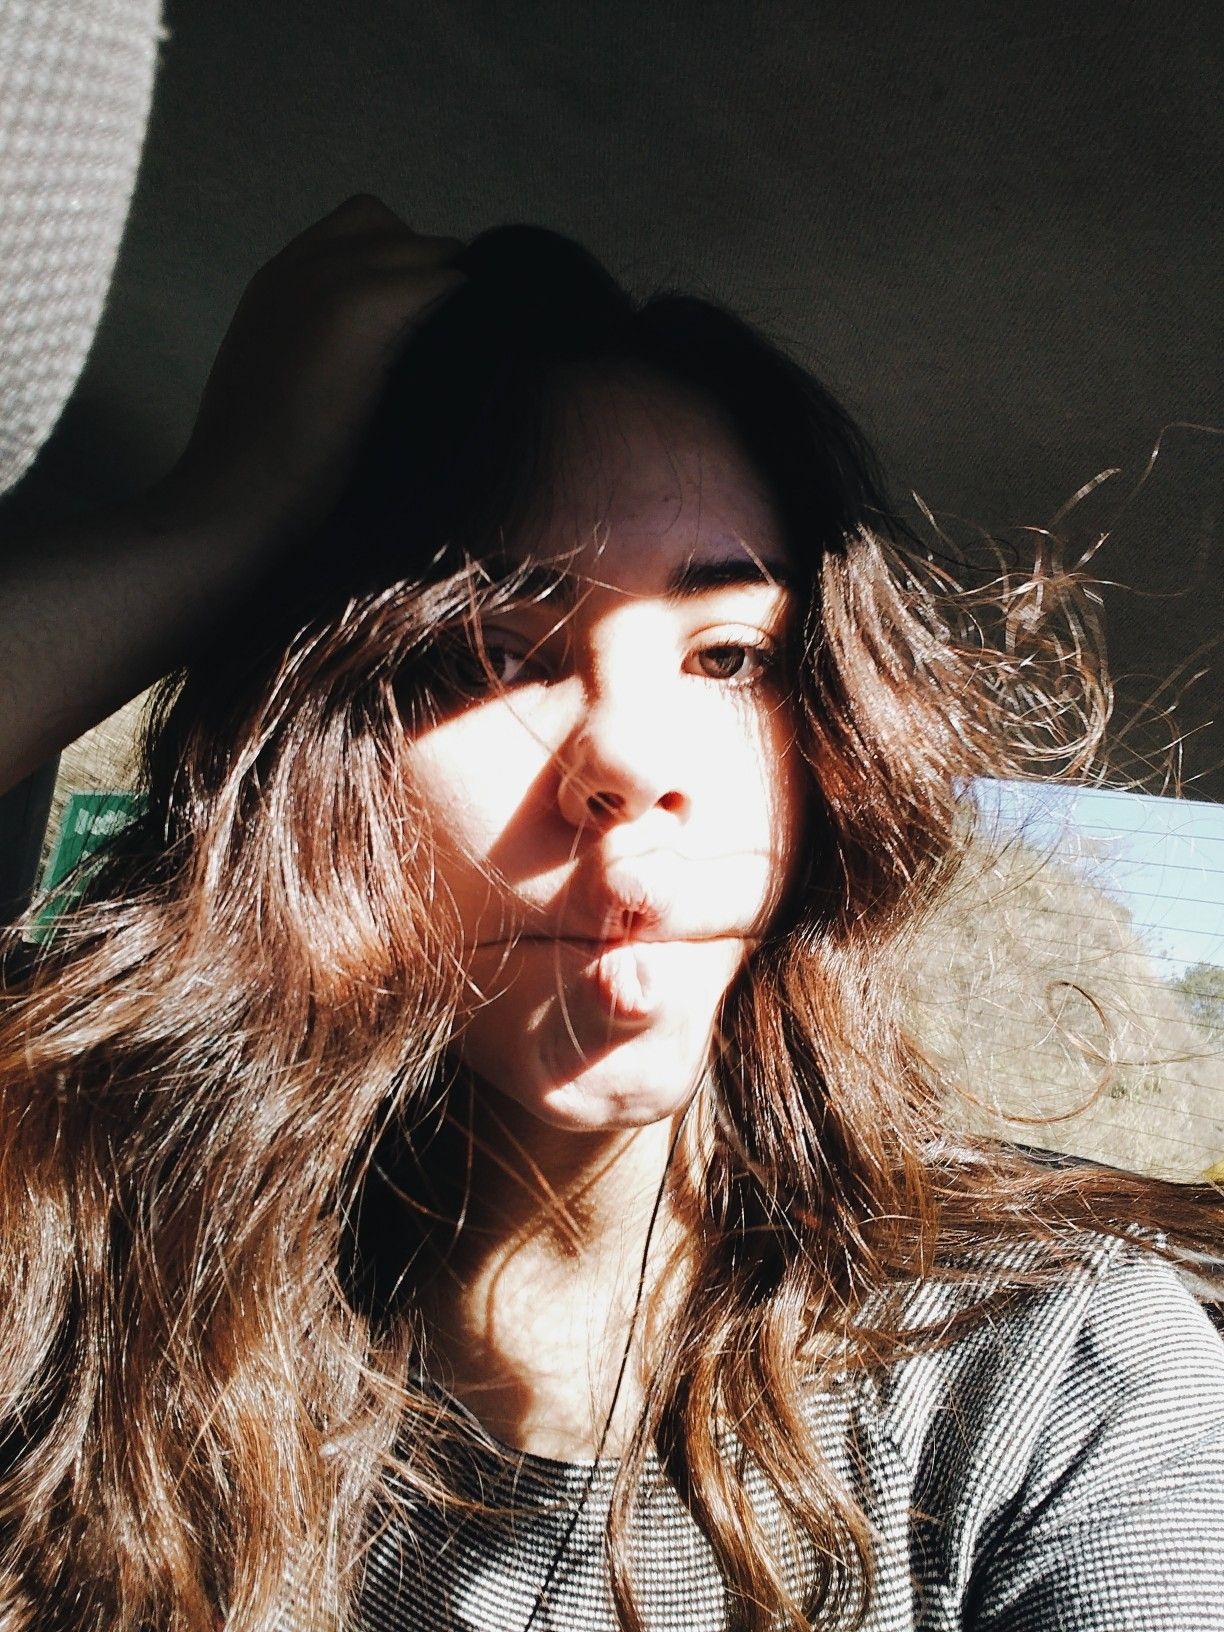 3a28db3ad8711 Insta pic   levasconcellos22   Selfie, wave hair, sunlight, picture ...